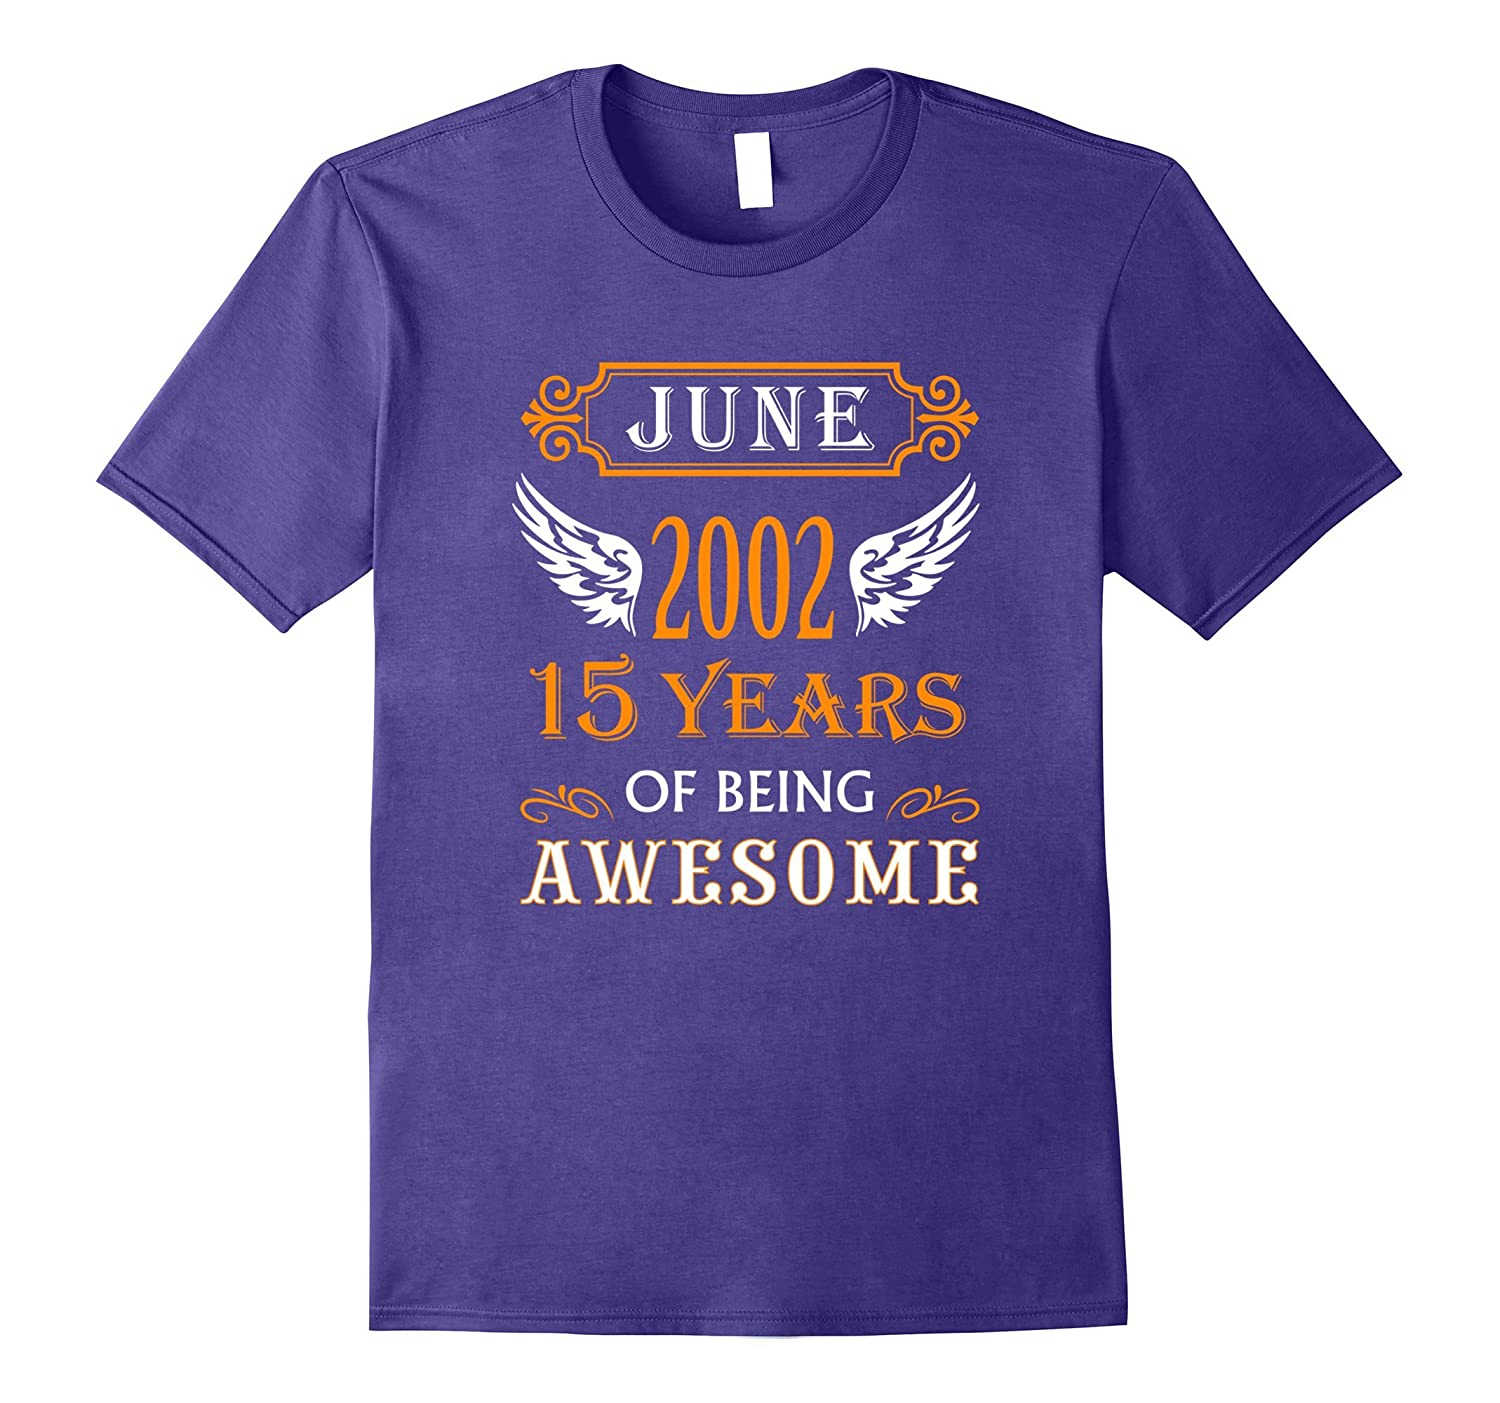 June Birthday Gift Shirt for 15 Year olds Born in 2002 Teen